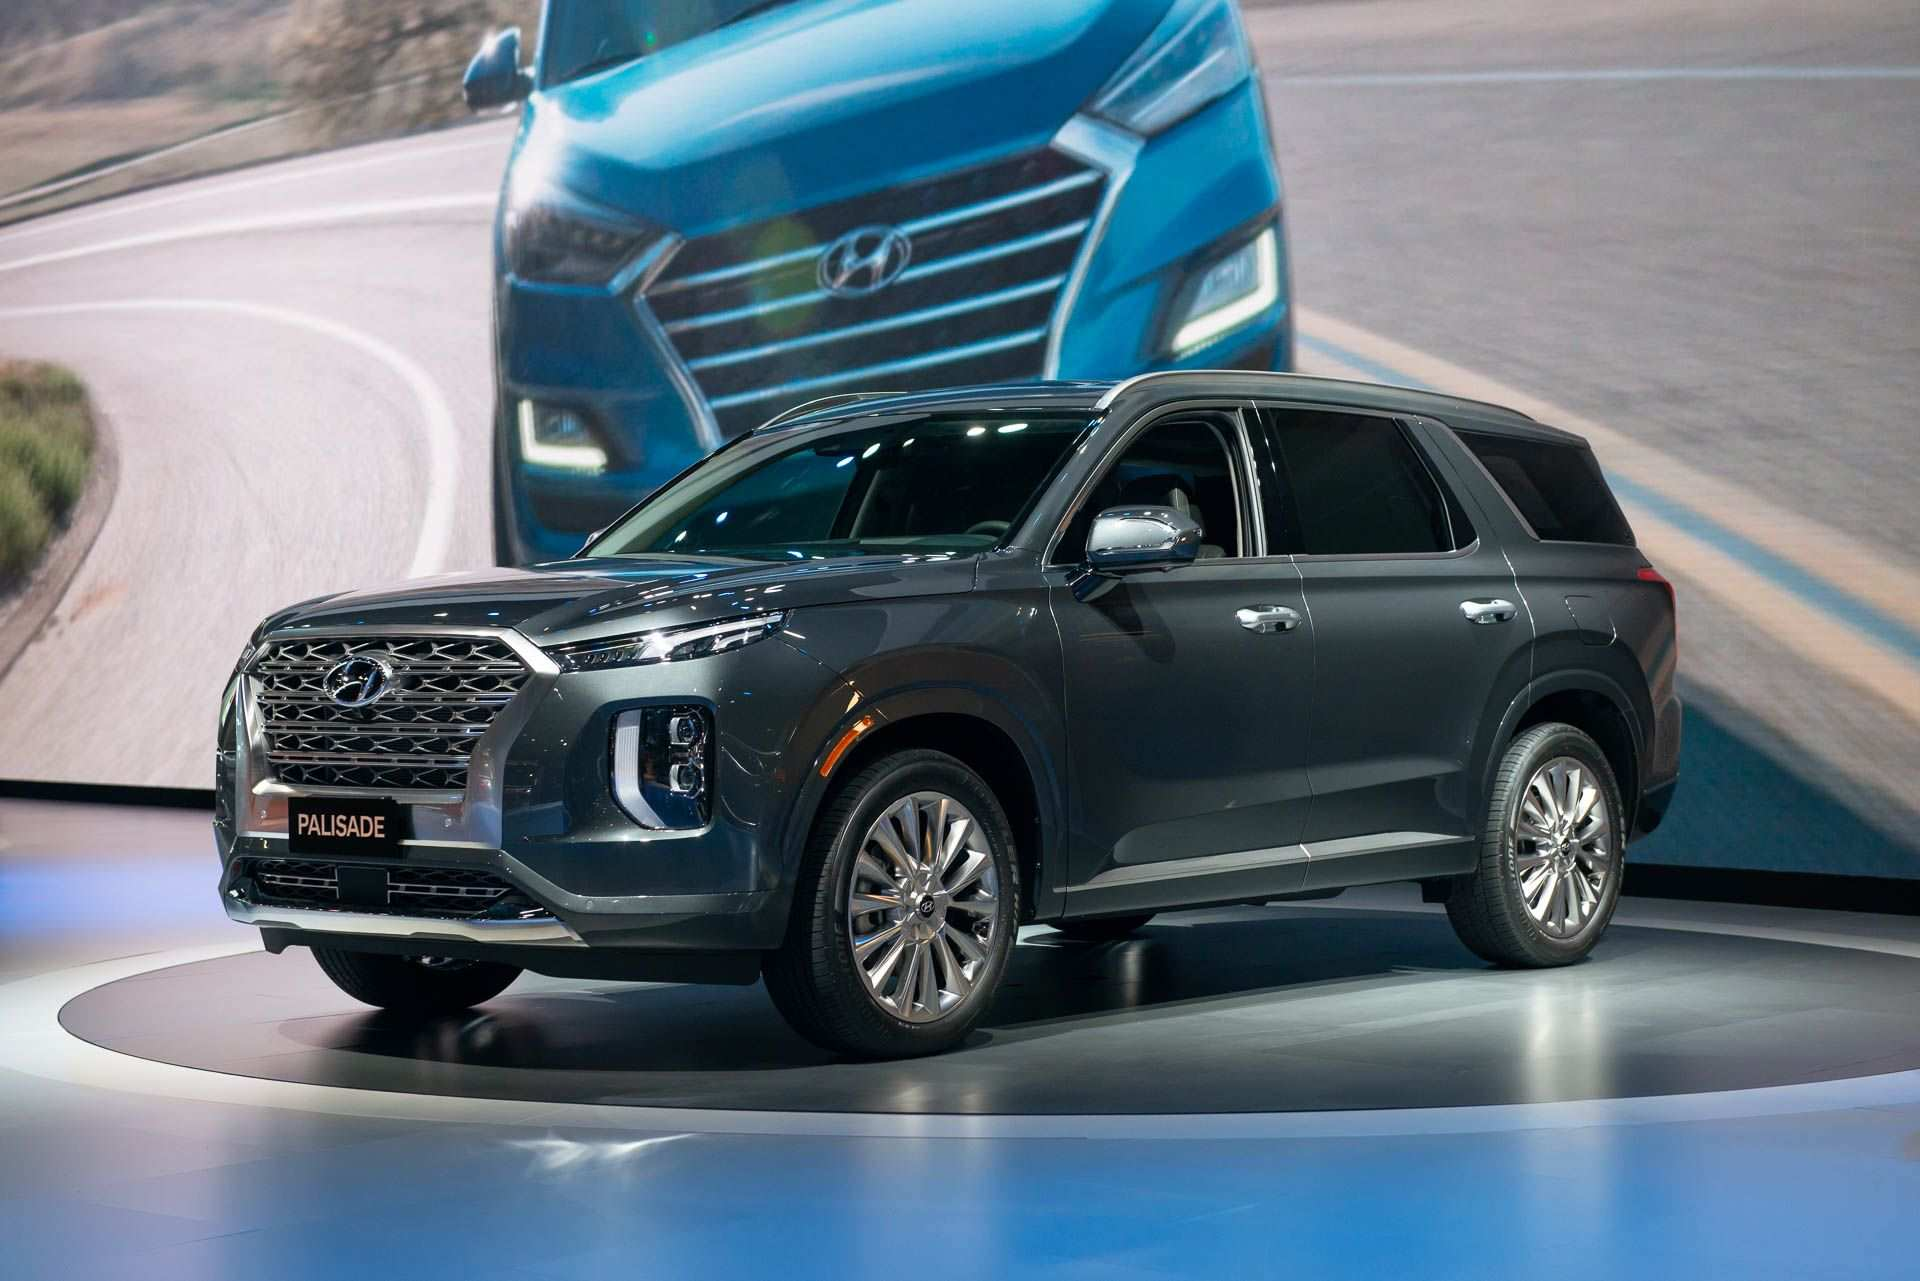 82 A When Does The 2020 Hyundai Palisade Come Out History